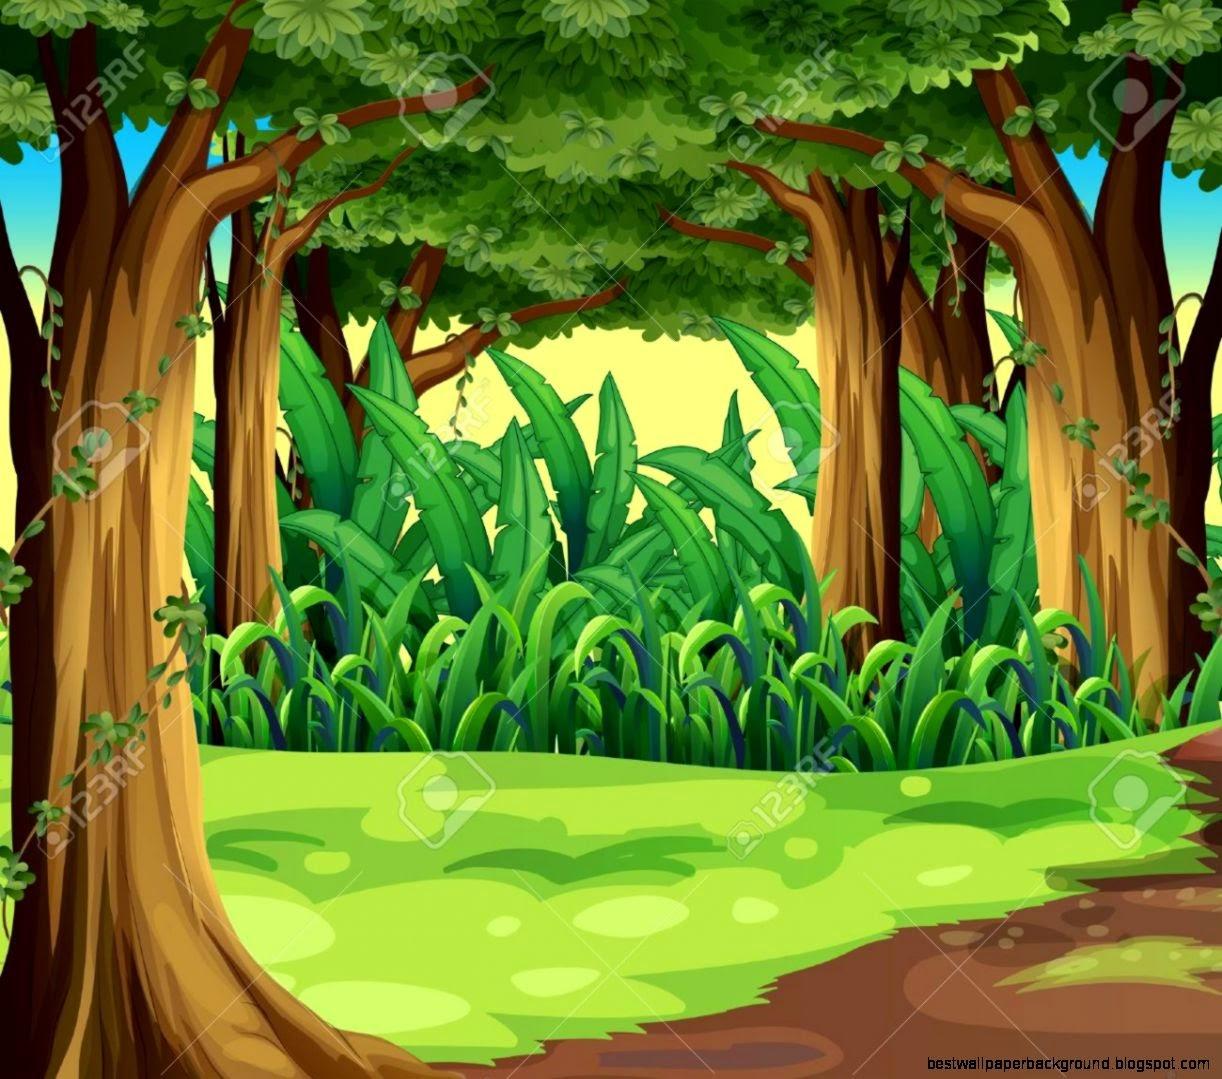 Animated Jungle Backgrounds | Best Wallpaper Background